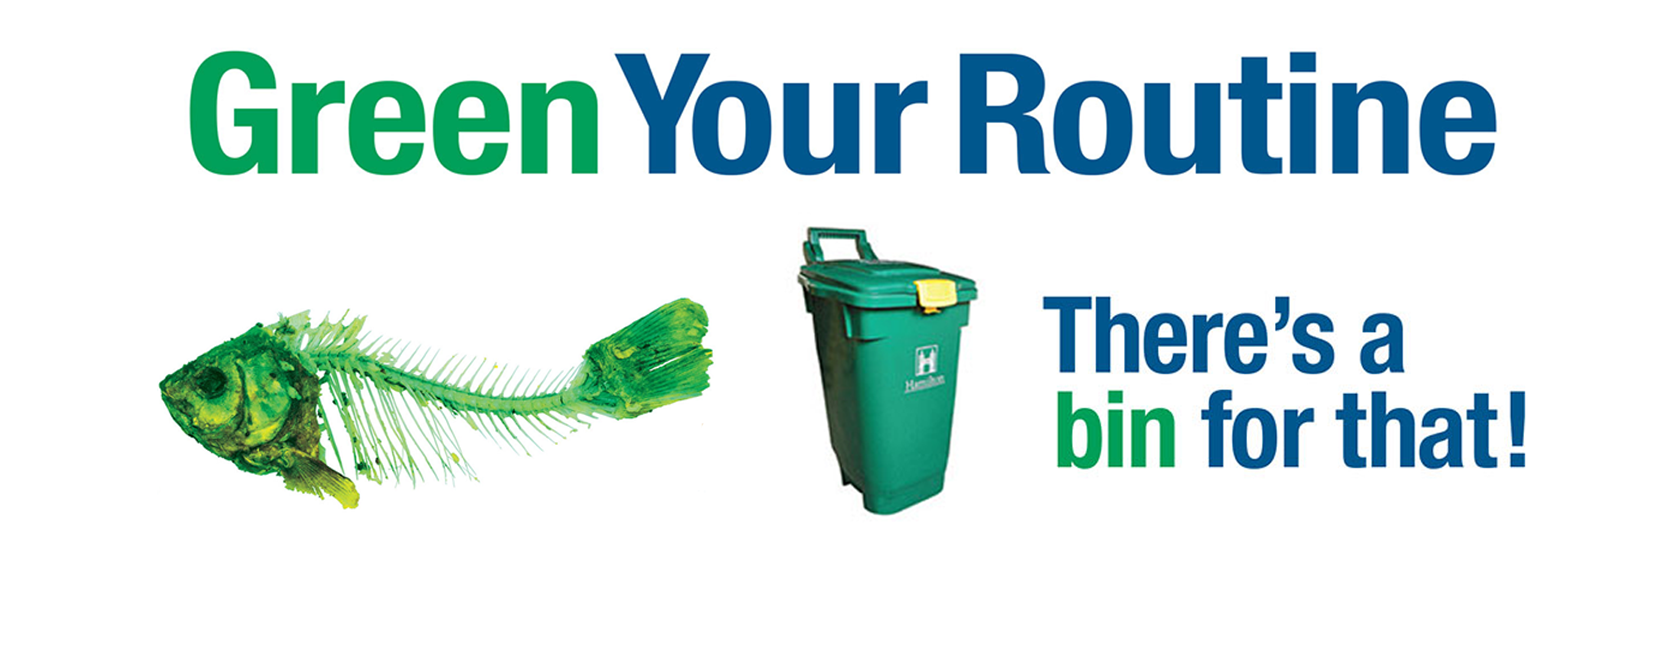 Green Your Routine promo image with green fish skeleton and green bin